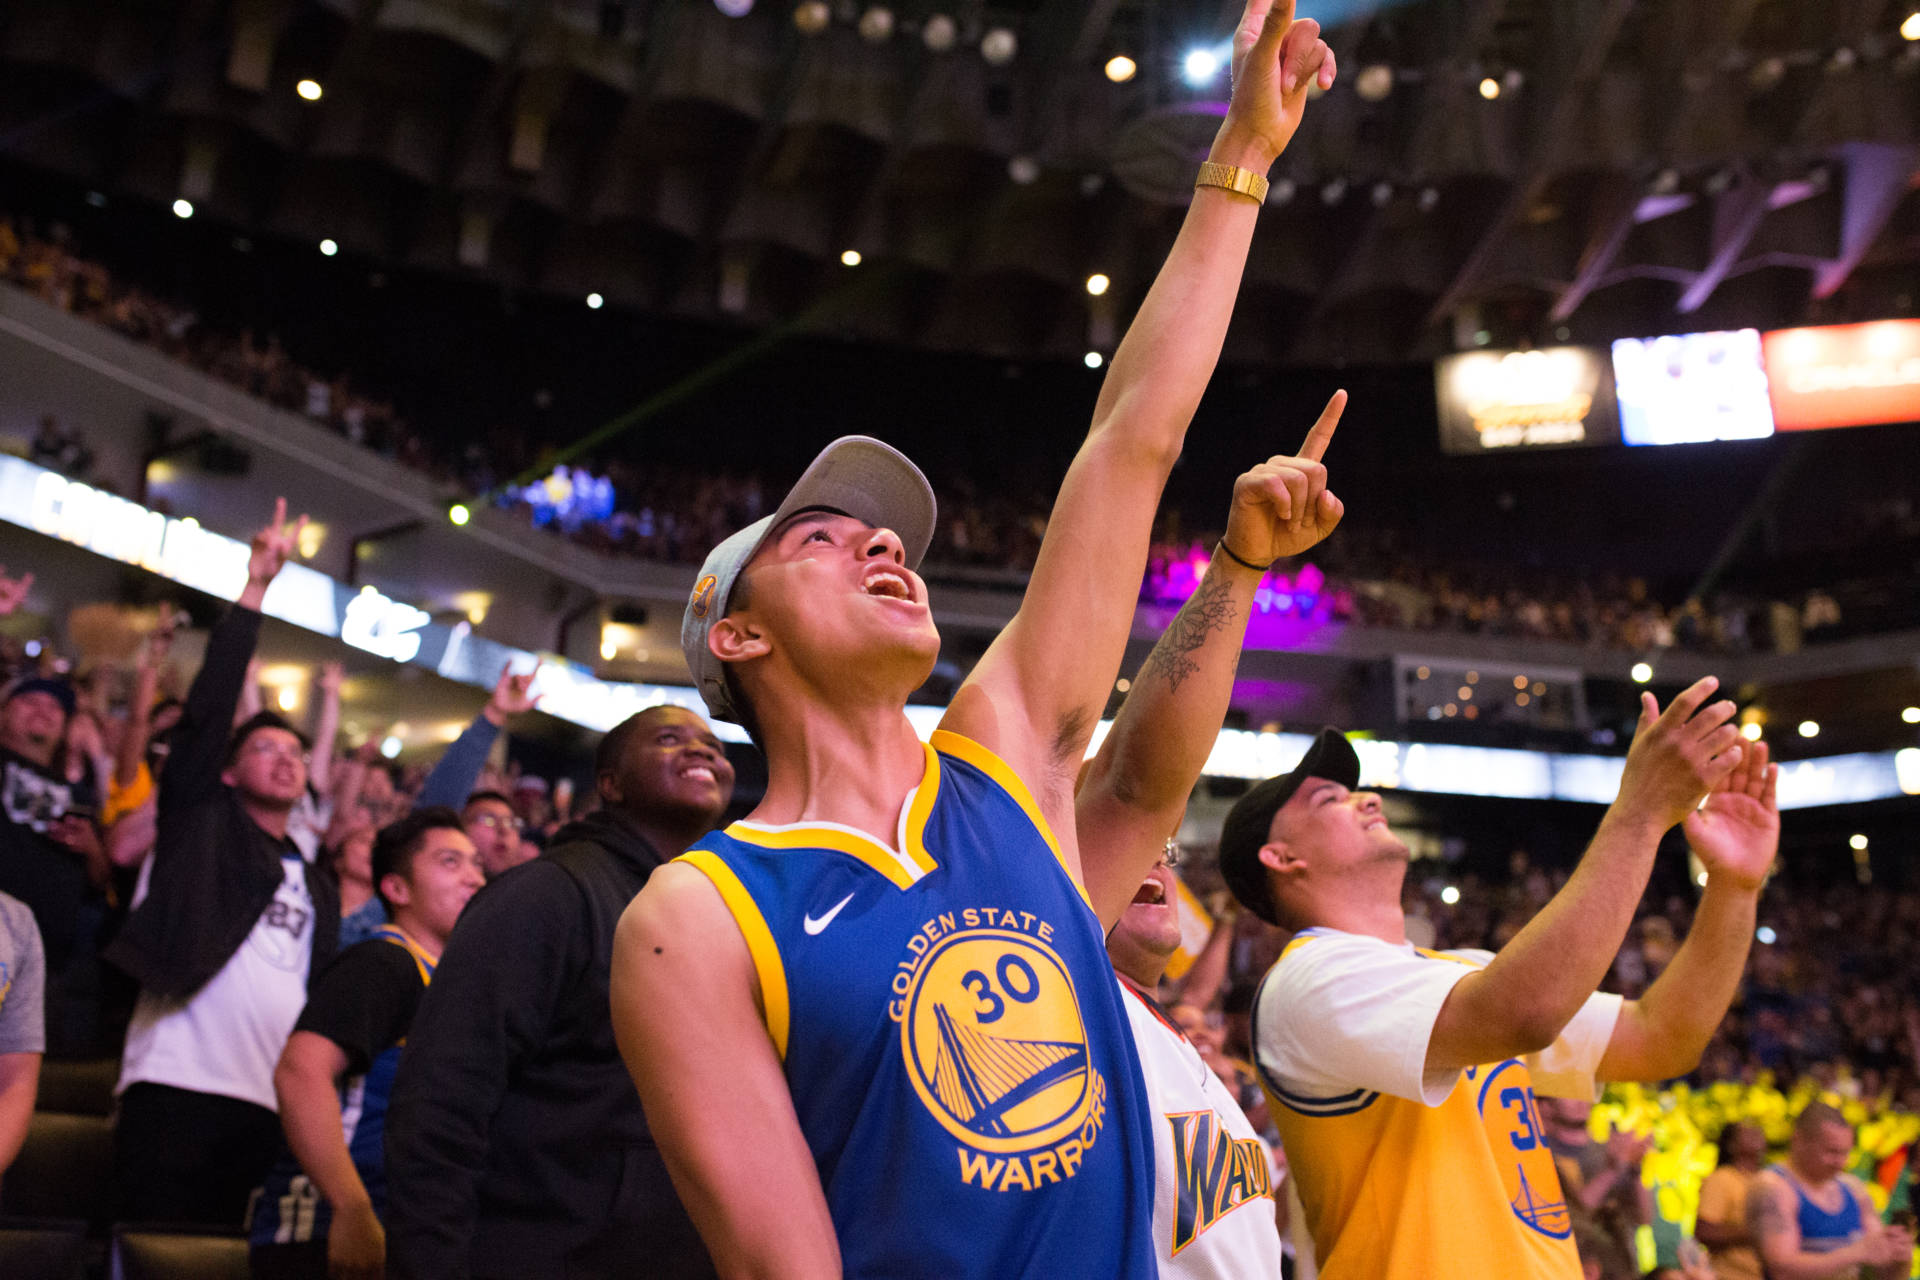 Urias Escudero of San Jose  cheers as the Warriors secure their win over the Cleveland Cavaliers on June 8, 2018 at the Warrior  Watch Party at Oracle Arena in Oakland. Samantha Shanahan/KQED